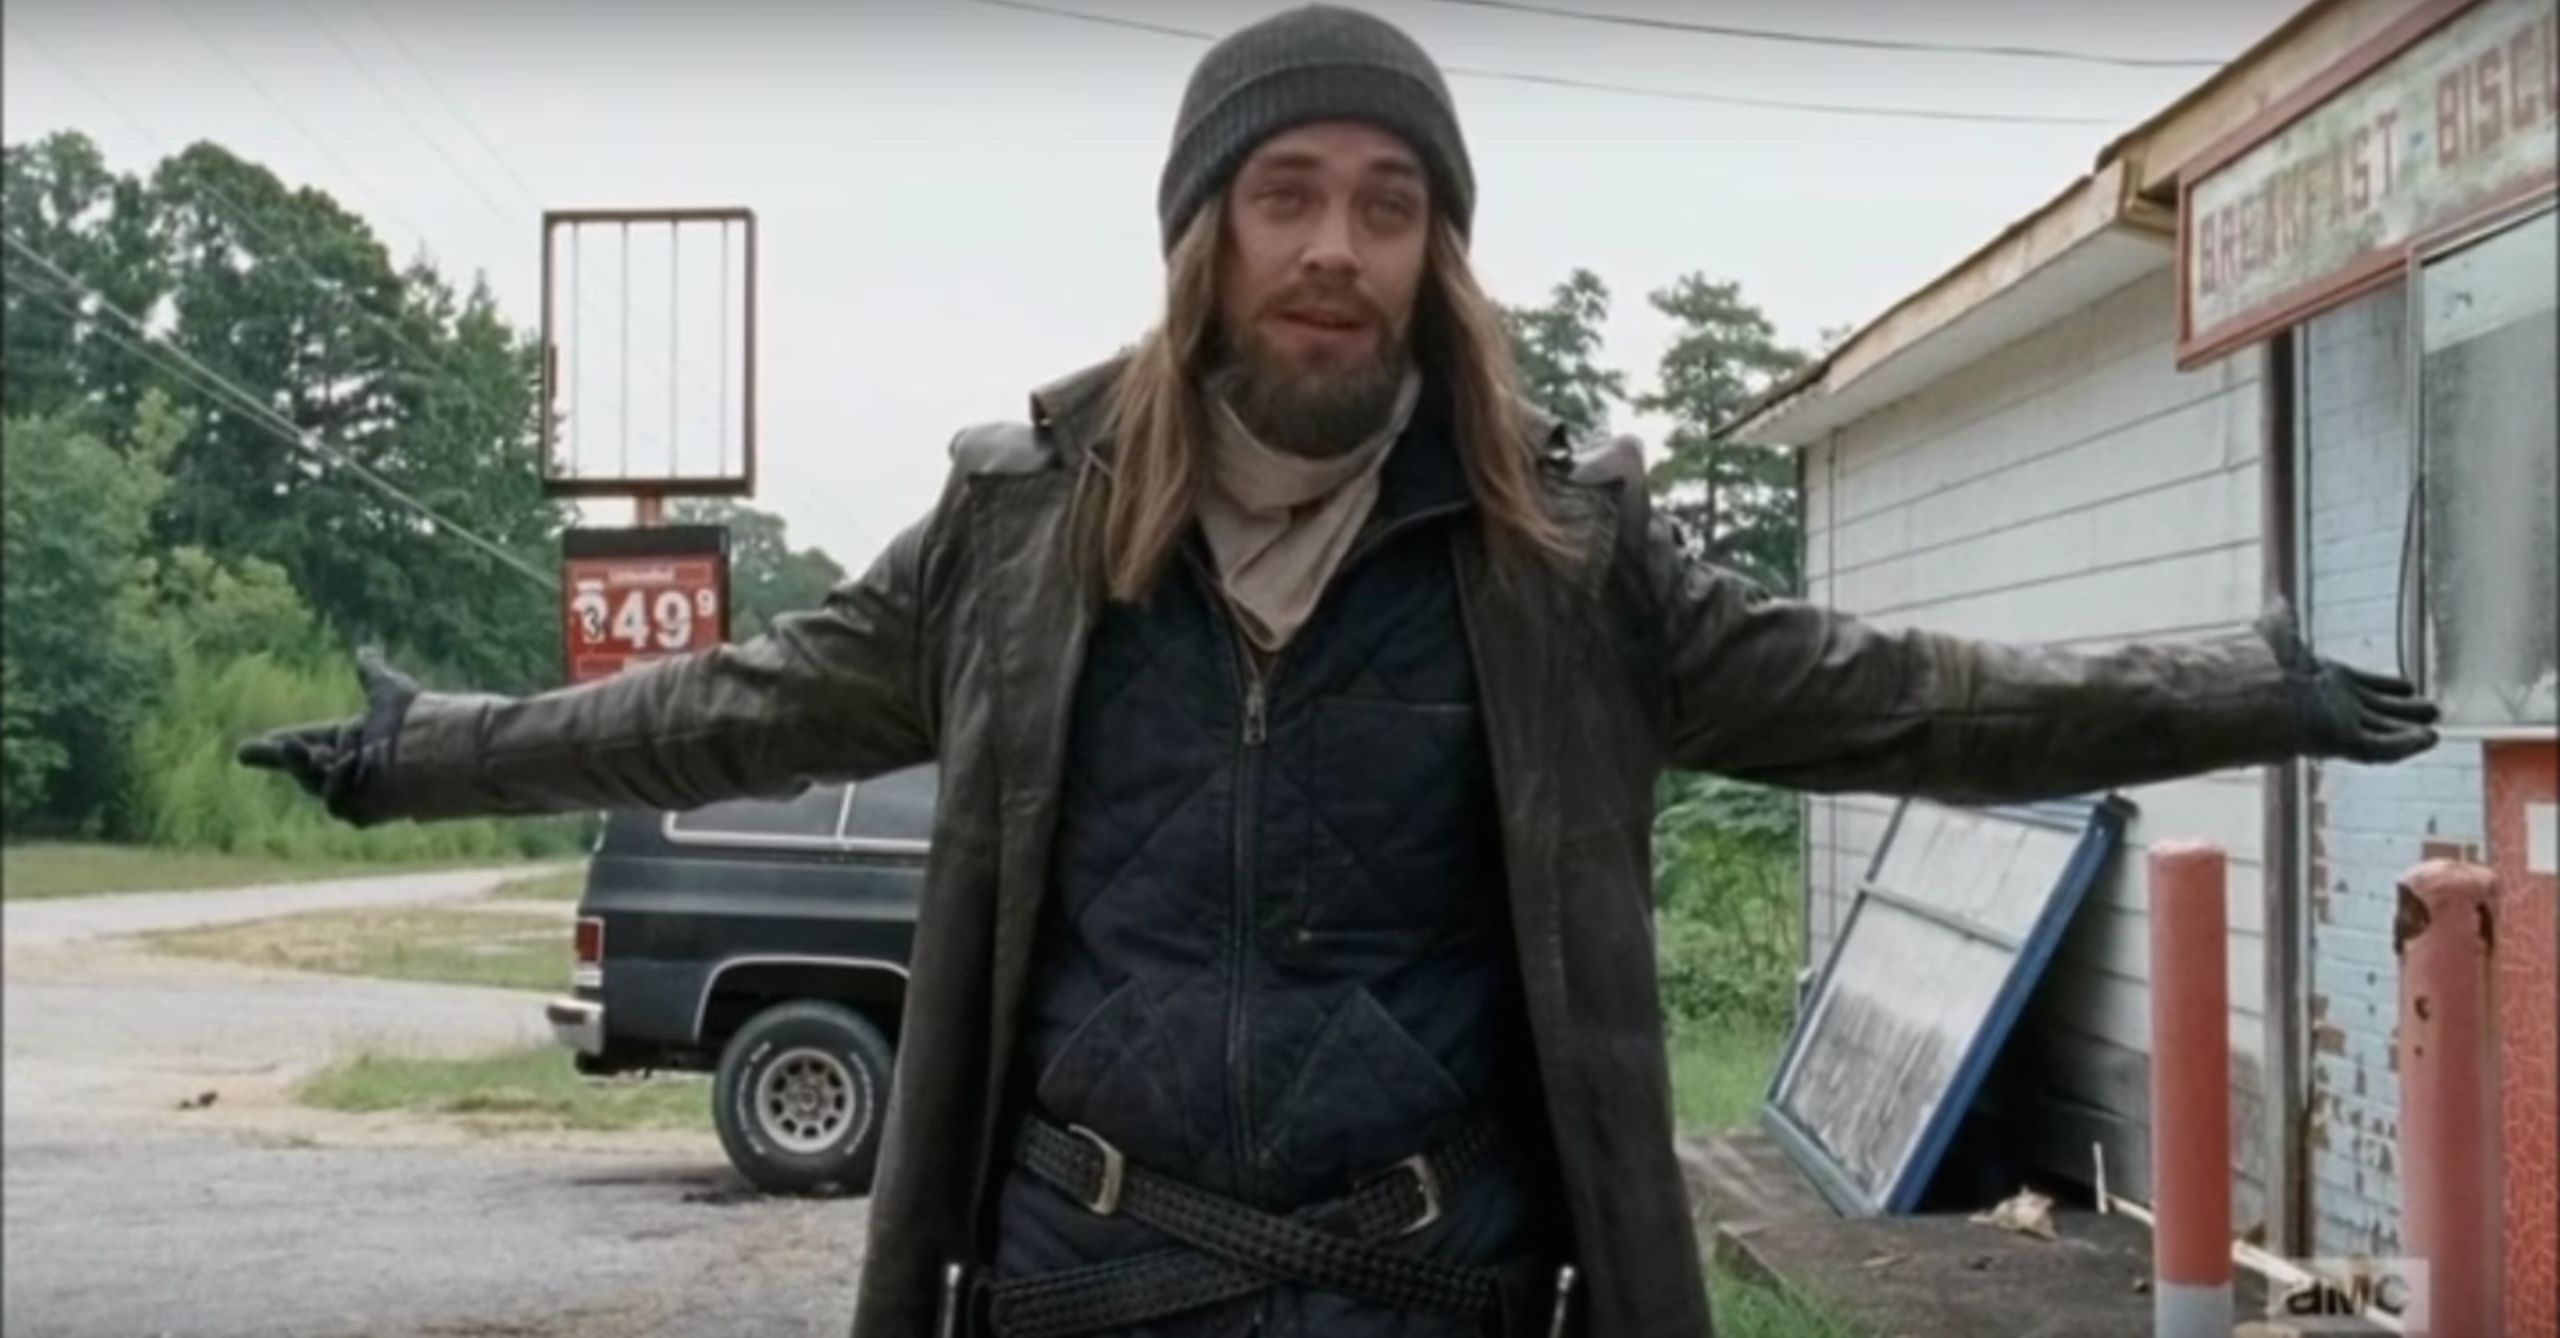 the-walking-dead-s-tom-payne-talks-the-one-change-amc-made-to-jesus-in-season-6-8560491.jpg